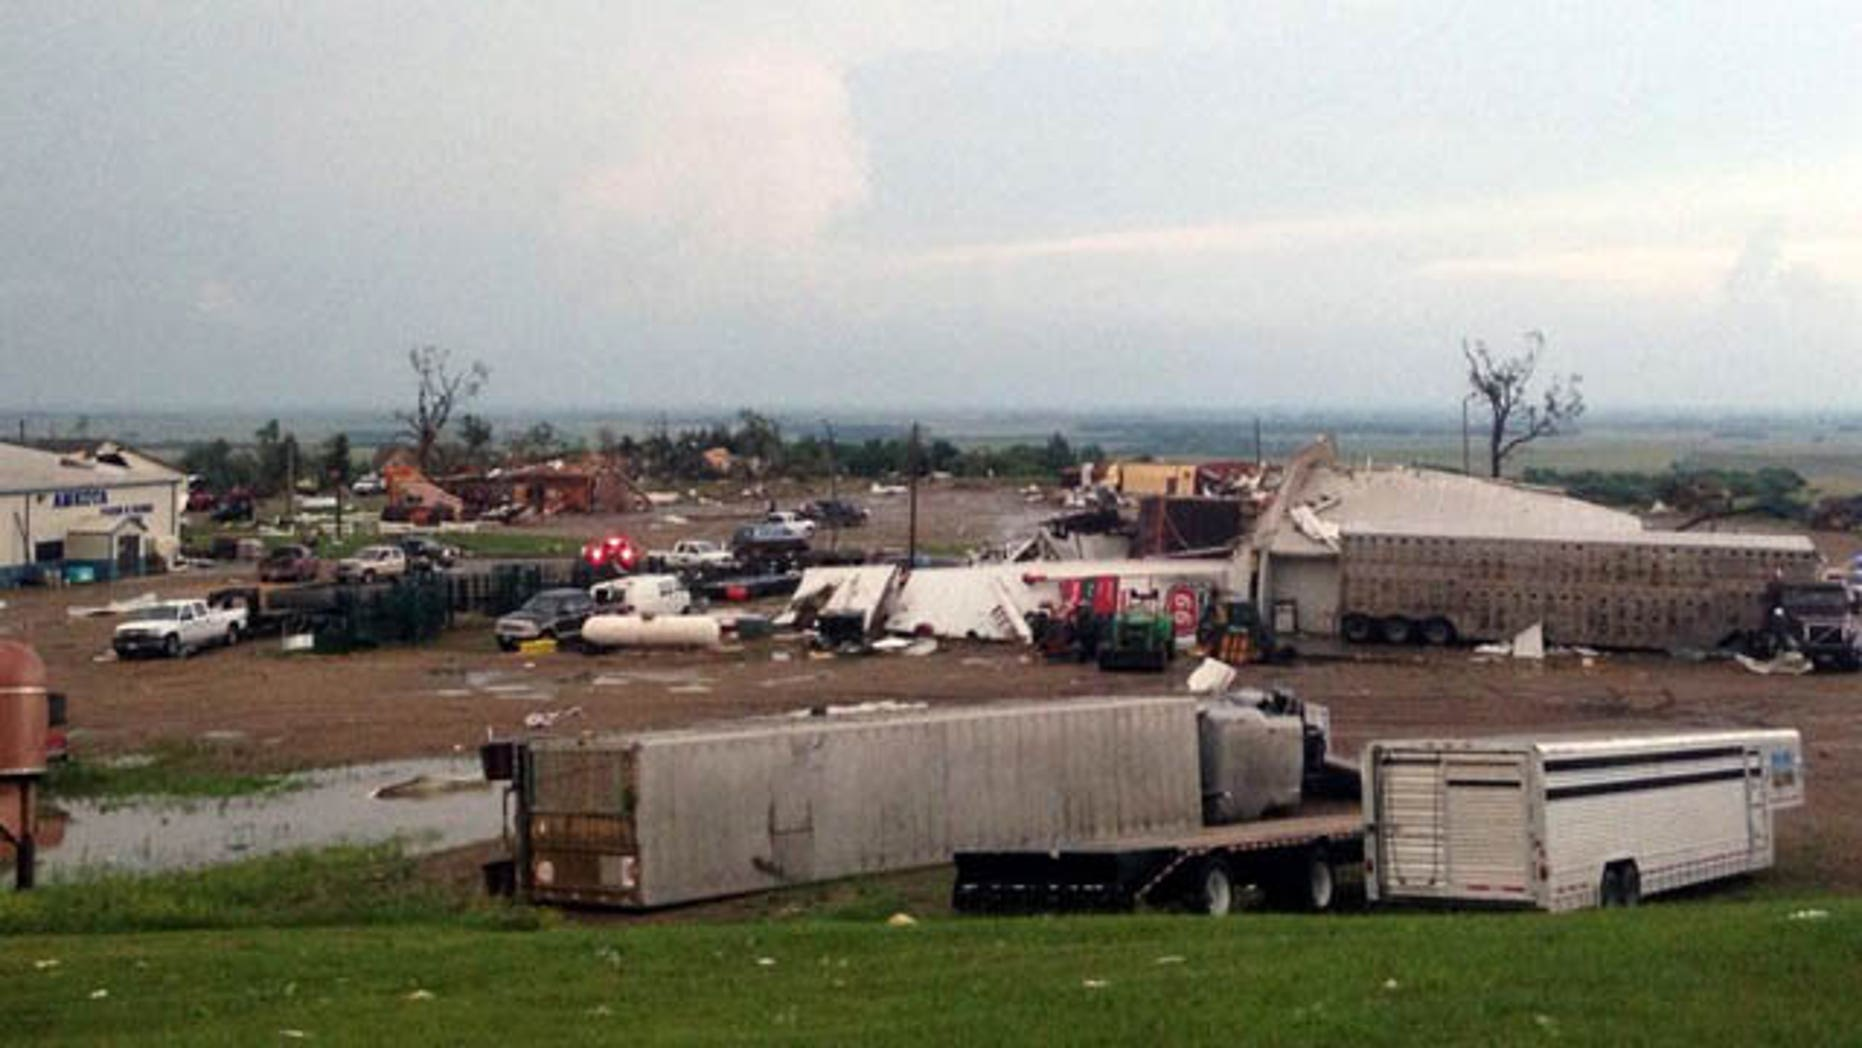 June 18, 2014: This photo provided by  KDLT shows damaged buildings in Wessington Springs, S.D. A tornado hit Wessington Springs Wednesday, damaging homes and businesses and injuring at least one person, according to the National Weather Service and a hospital spokeswoman. (AP Photo/KDLT, Brian Kirk)